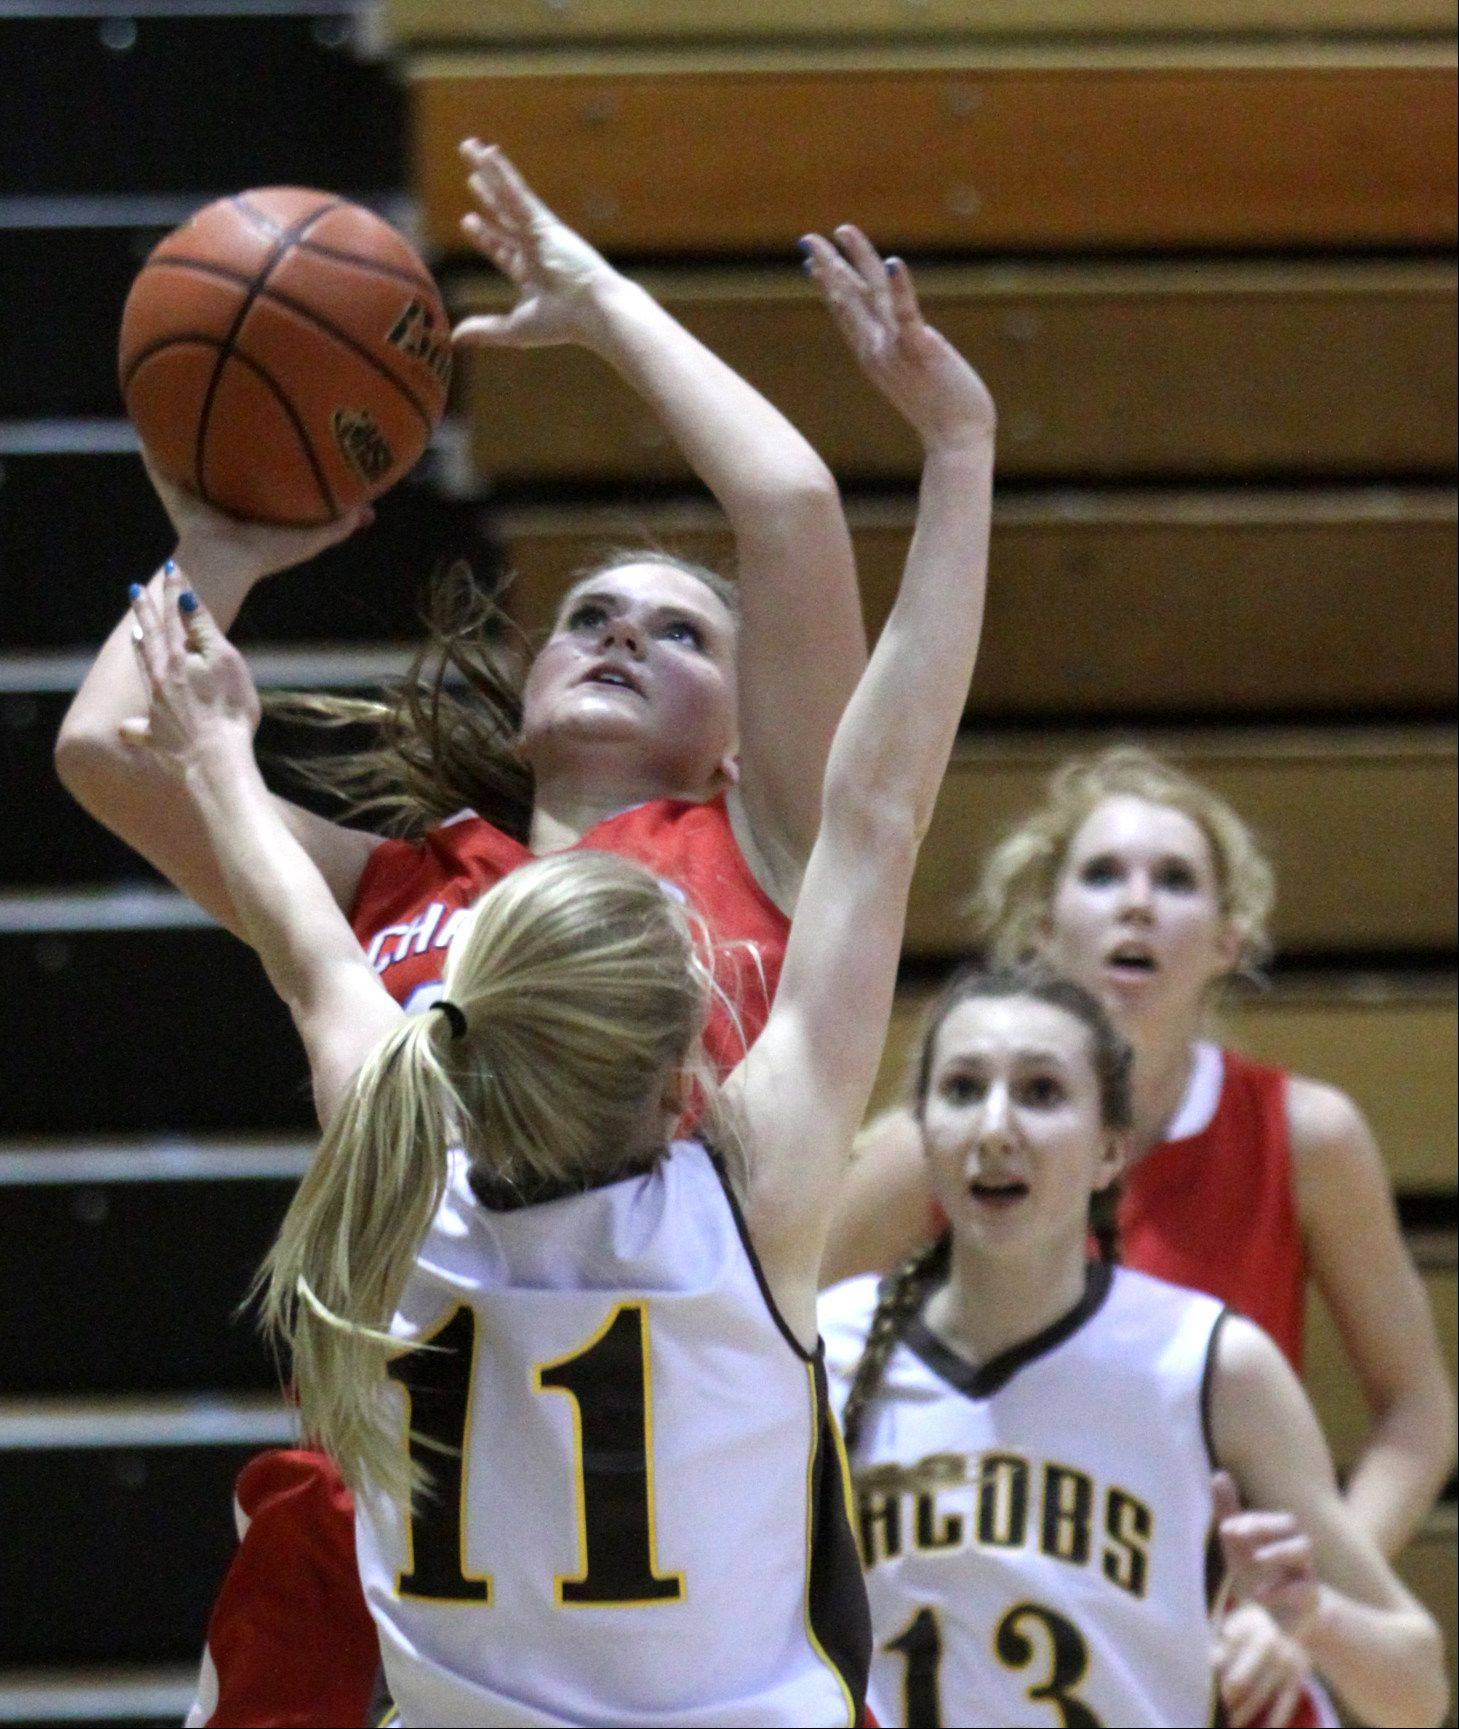 Dundee-Crown's Stephanie Magsamen goes to the hoop against Jacobs.